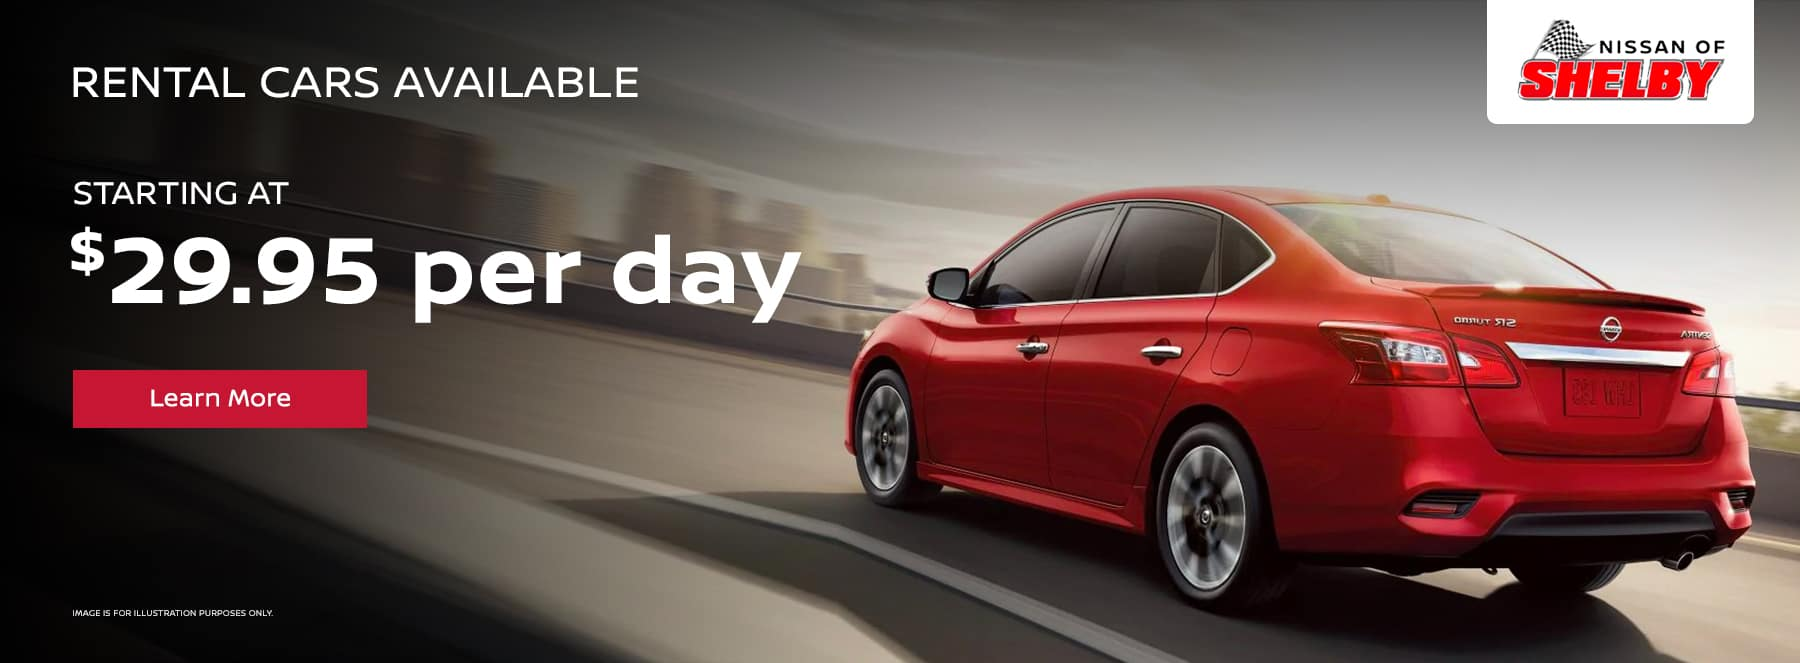 Rental Cars Available, starting at $29.95 per day